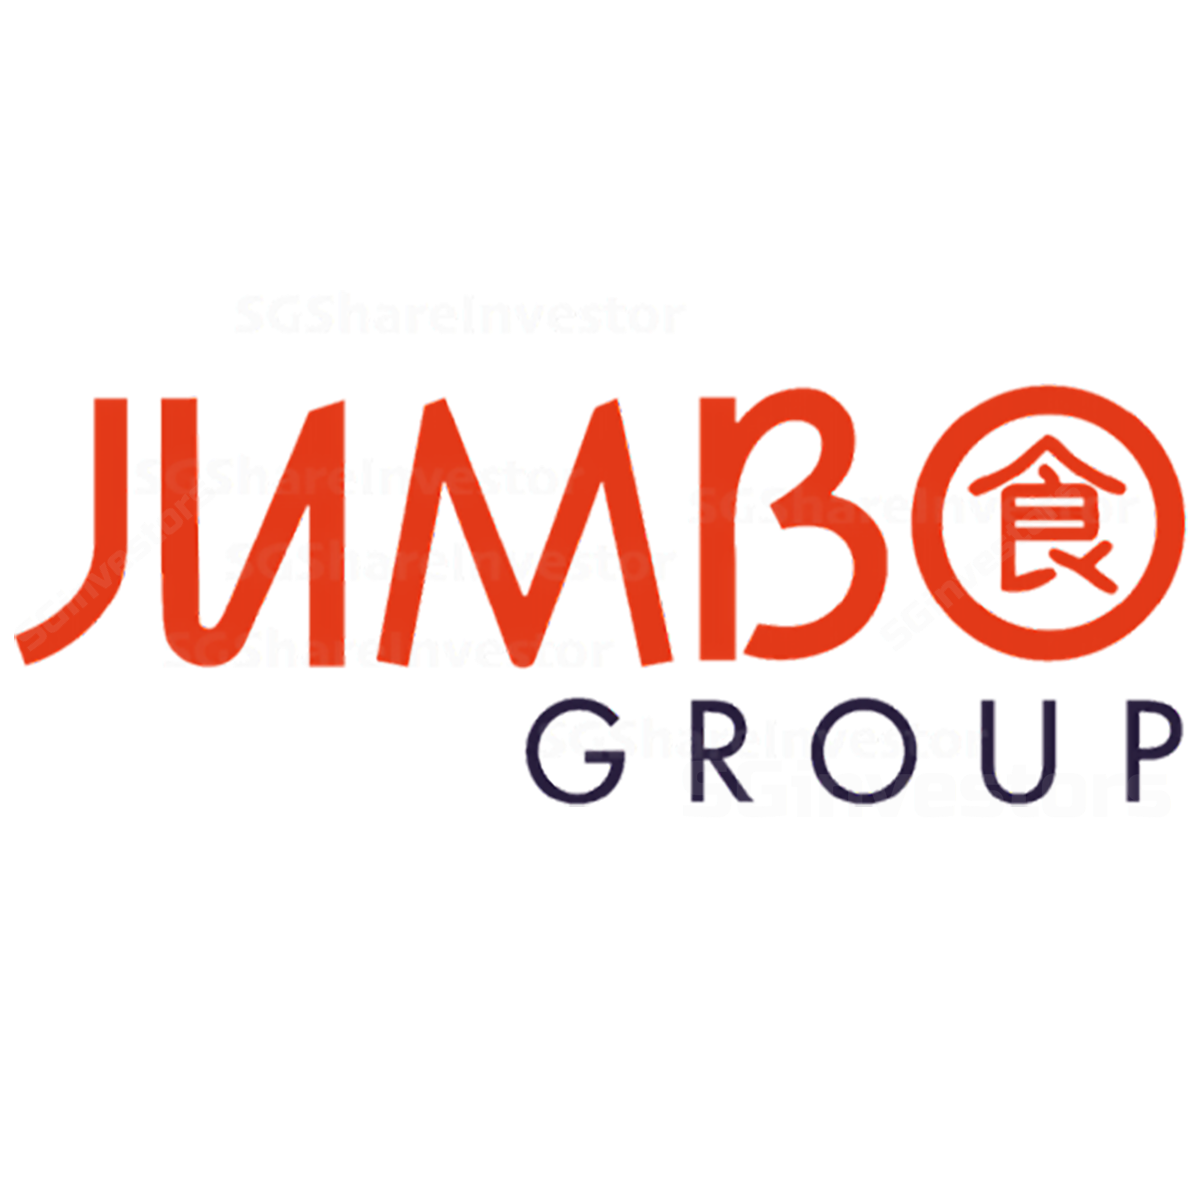 Jumbo Group (JUMBO SP) - UOB Kay Hian 2016-11-29: FY16 Results In Line; A Pleasant Dividend Surprise